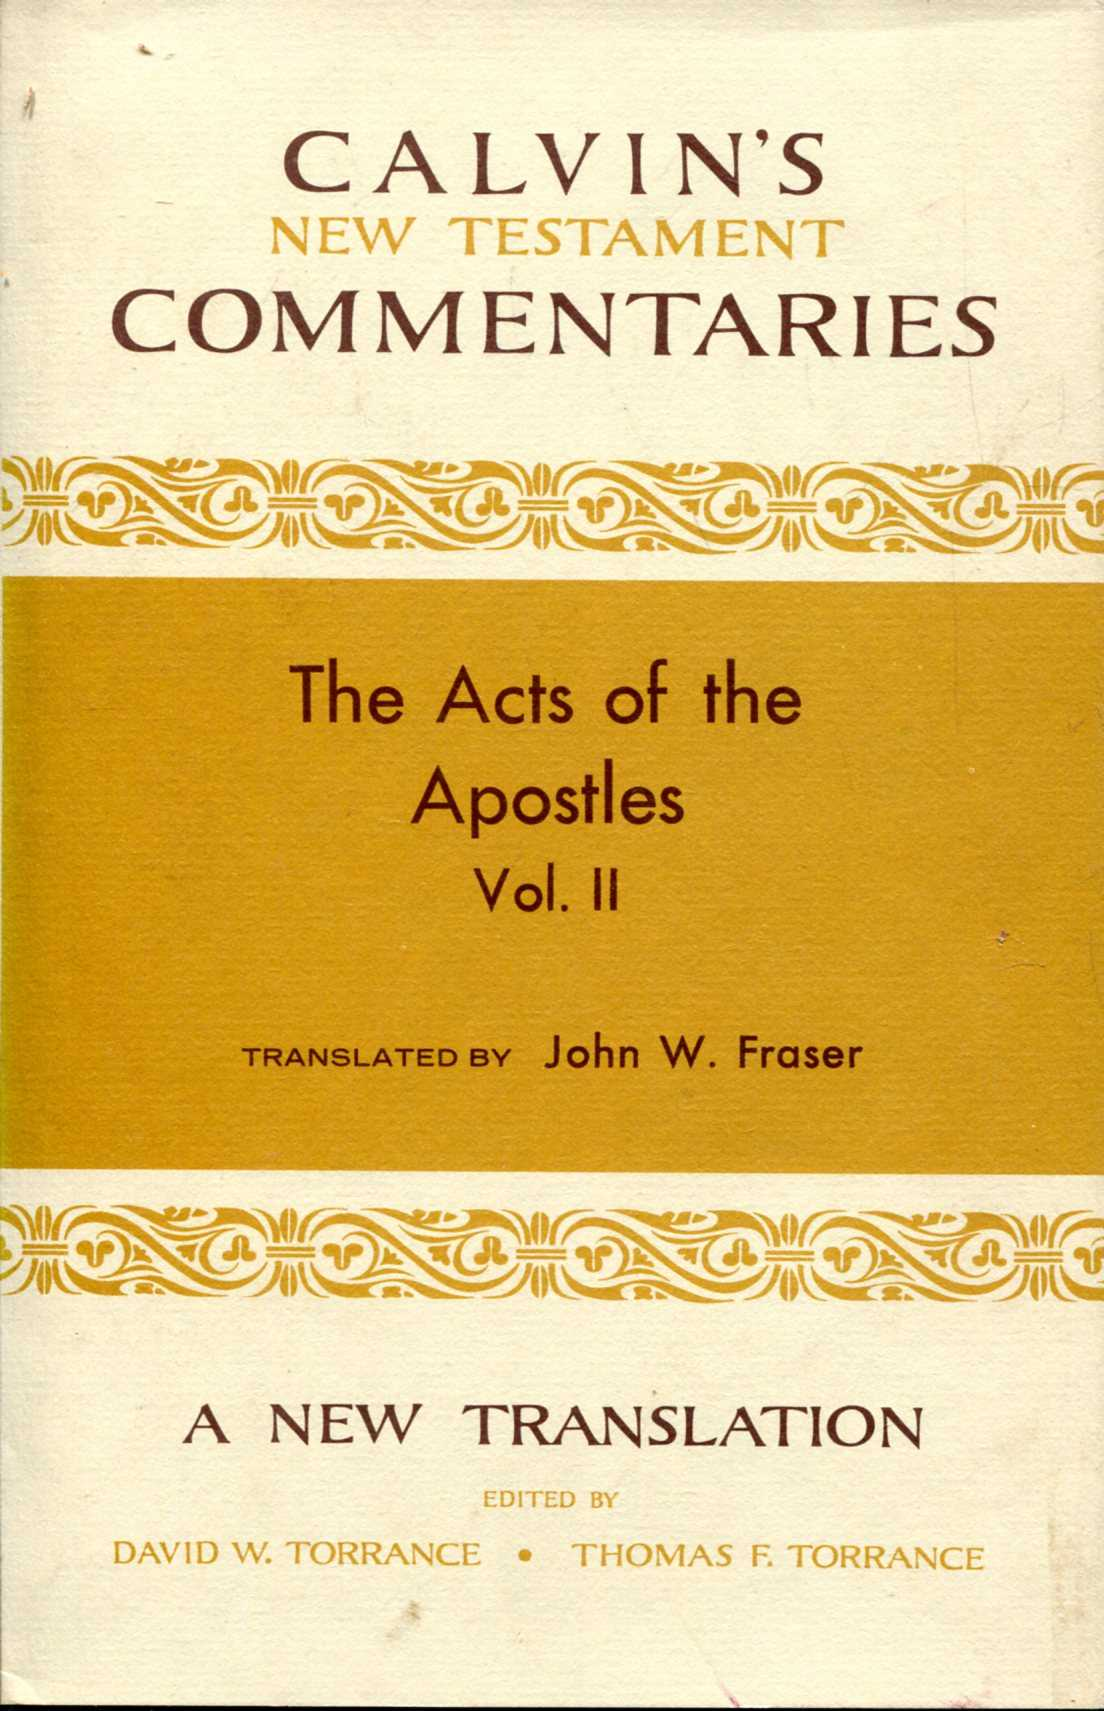 Image for The Acts of the Apostles volume II 14-28 (Calvin's New Testament Commentaries)